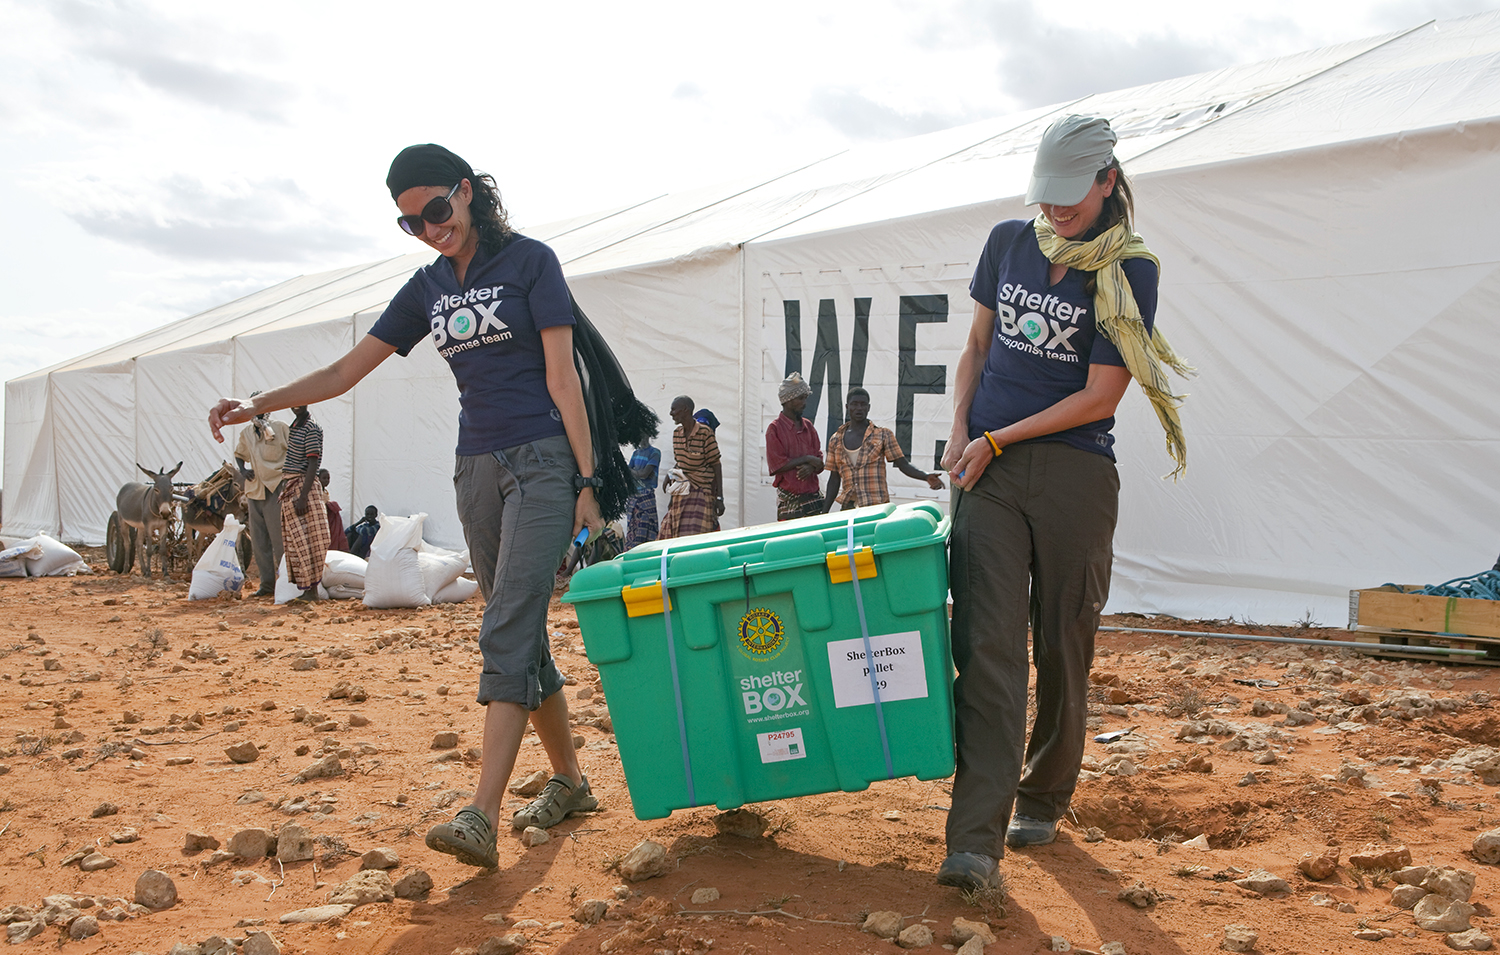 L-R Emily LoSavio (USA) and Rebecca Ridgeway (UK) carry the first of 1600 destined for Dolo Ado at the Haloweyn Refugee Camp, Somali Region, Ethiopia